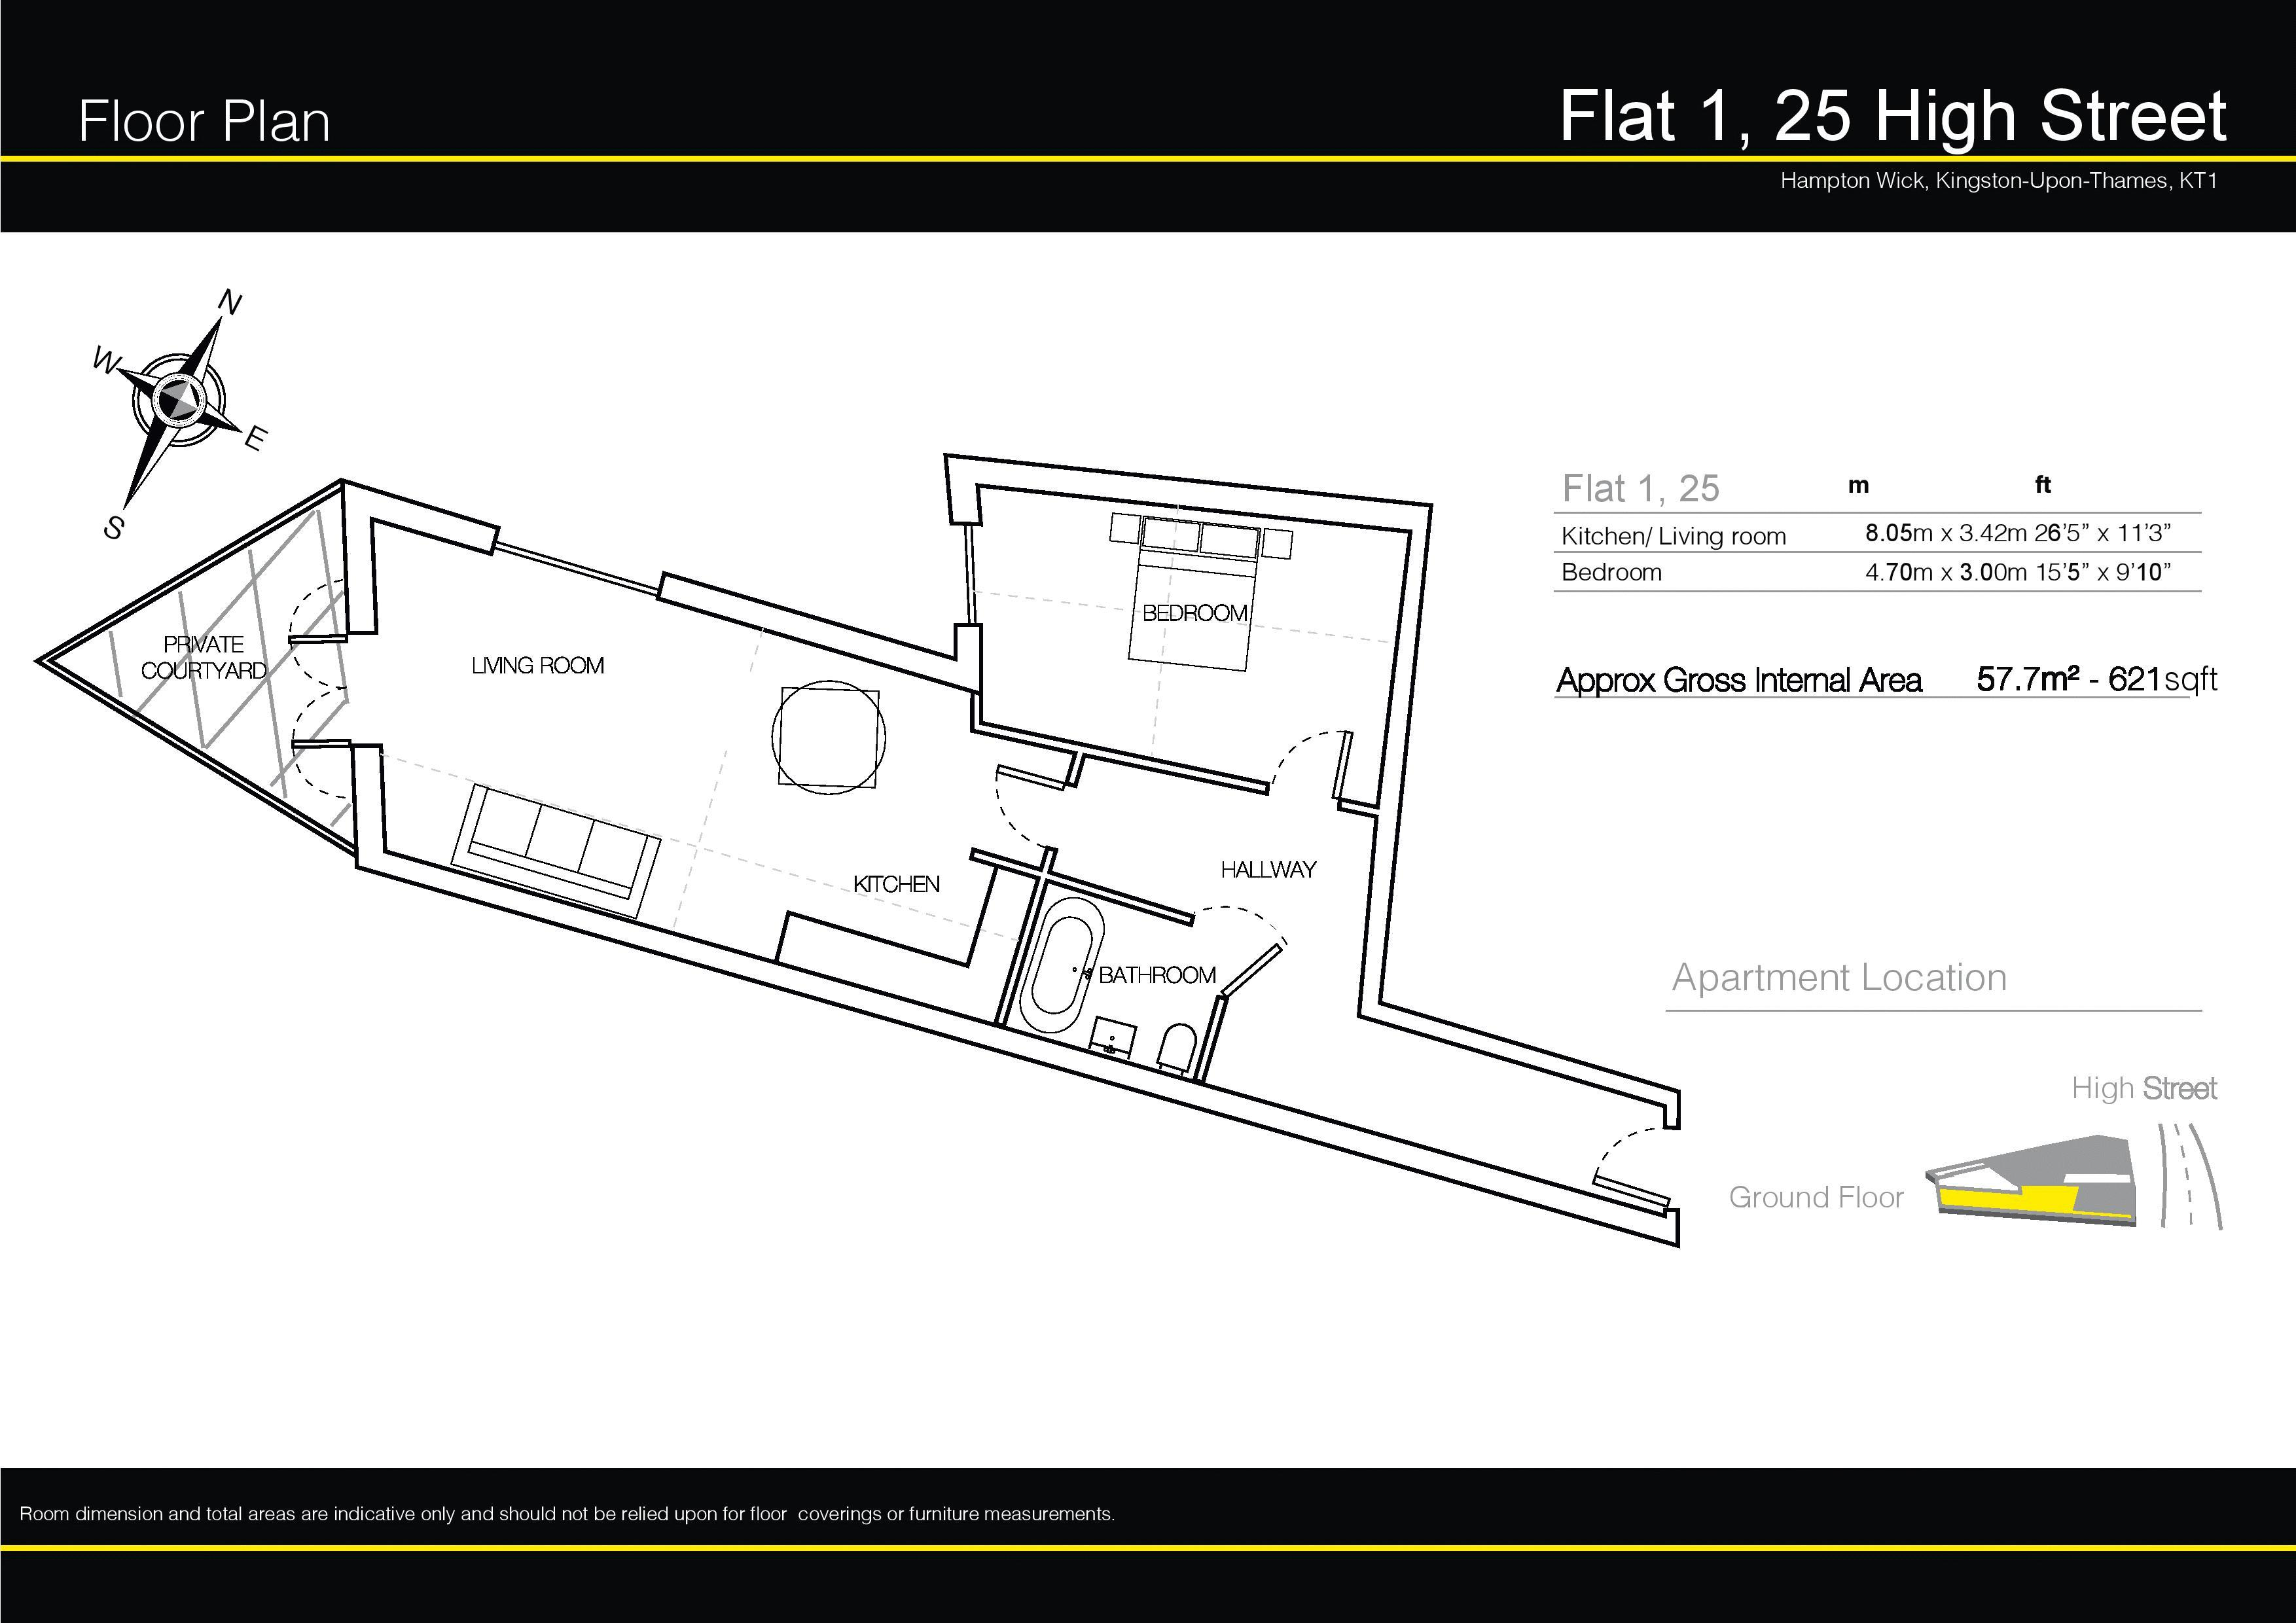 Floorplans For High Street, Hampton Wick